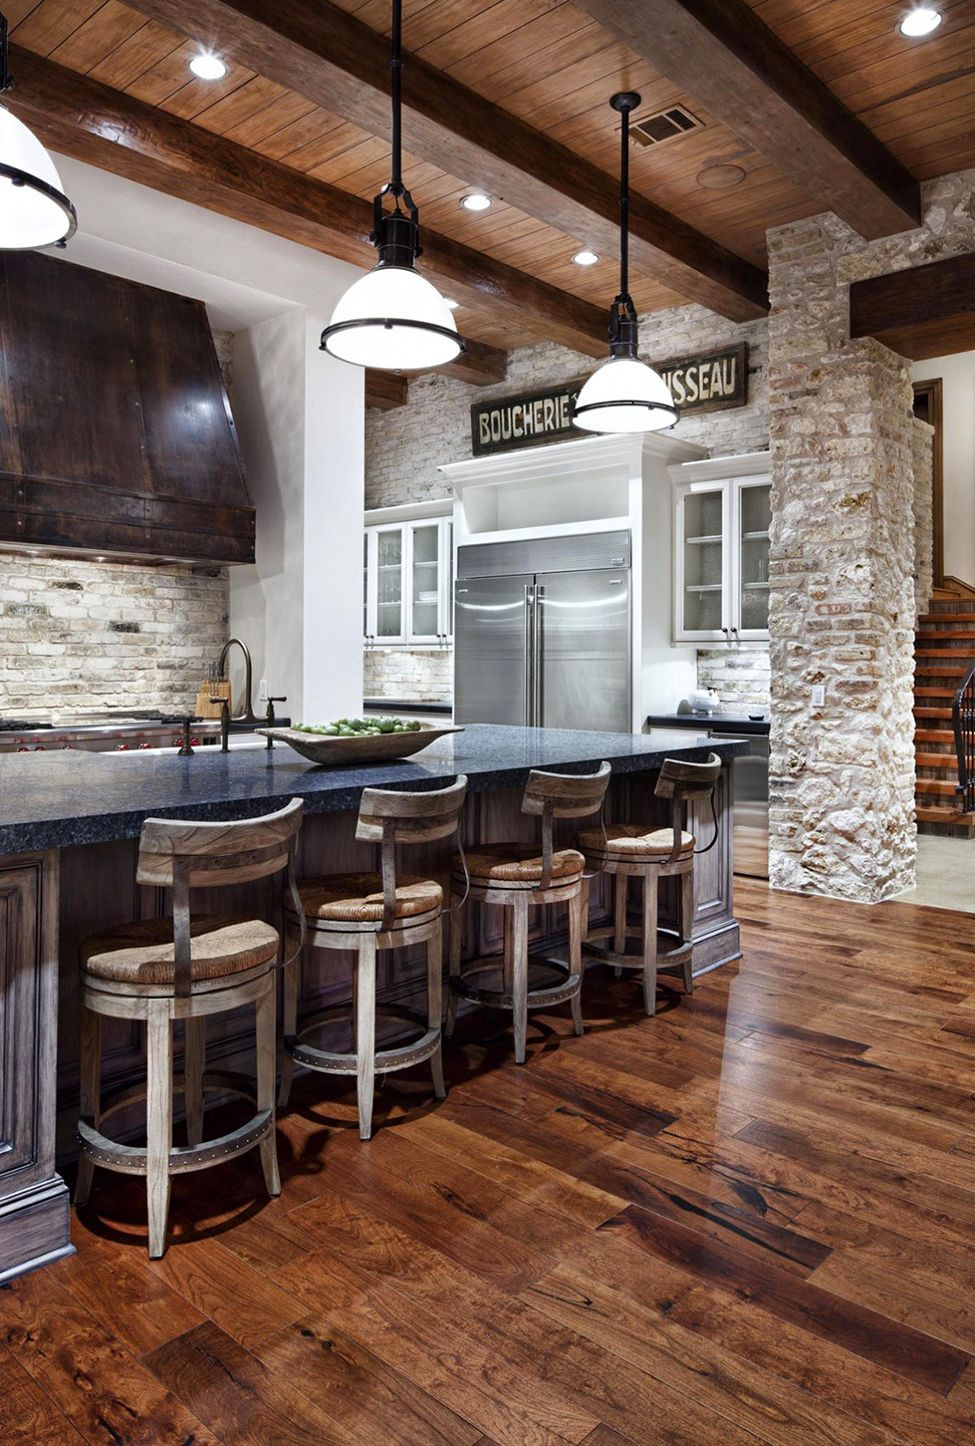 Rustic Industrial Kitchen Luxury Home In Texas When Rustic Meets Modern Love The Barn